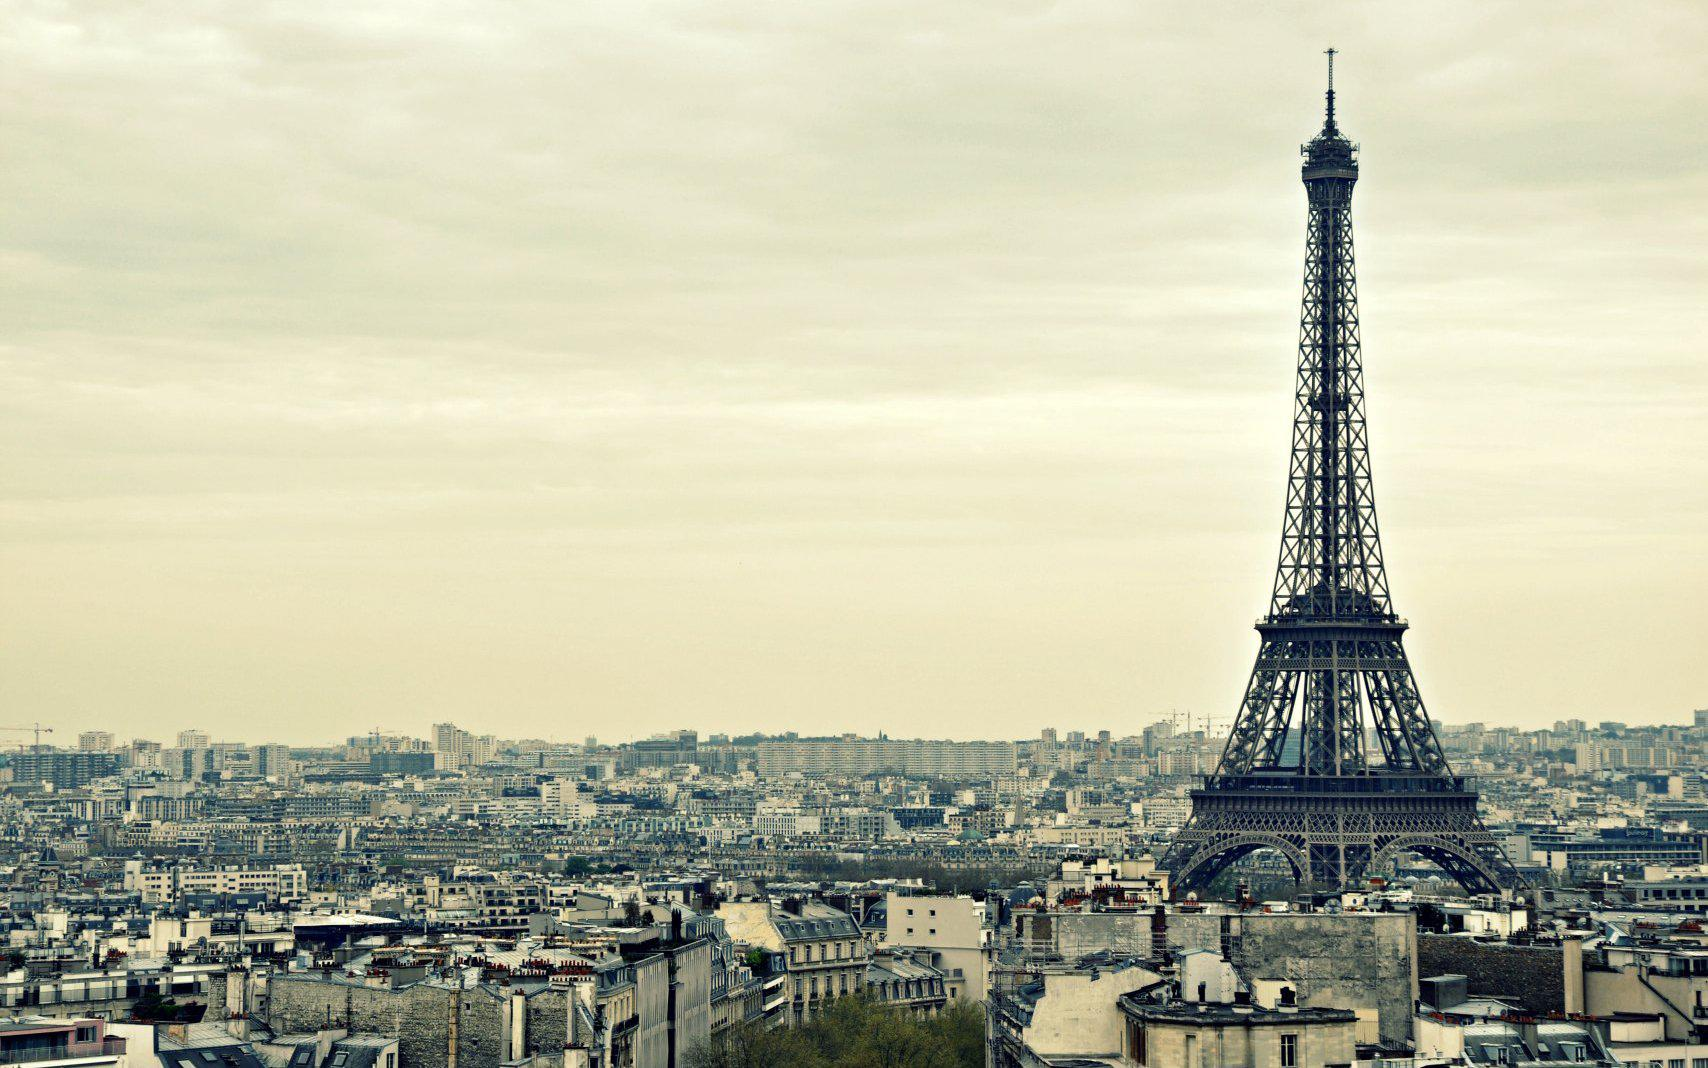 Hd wallpaper eiffel tower - Tower Wallpapers Hd Pictures One Hd Wallpaper Pictures Backgrounds